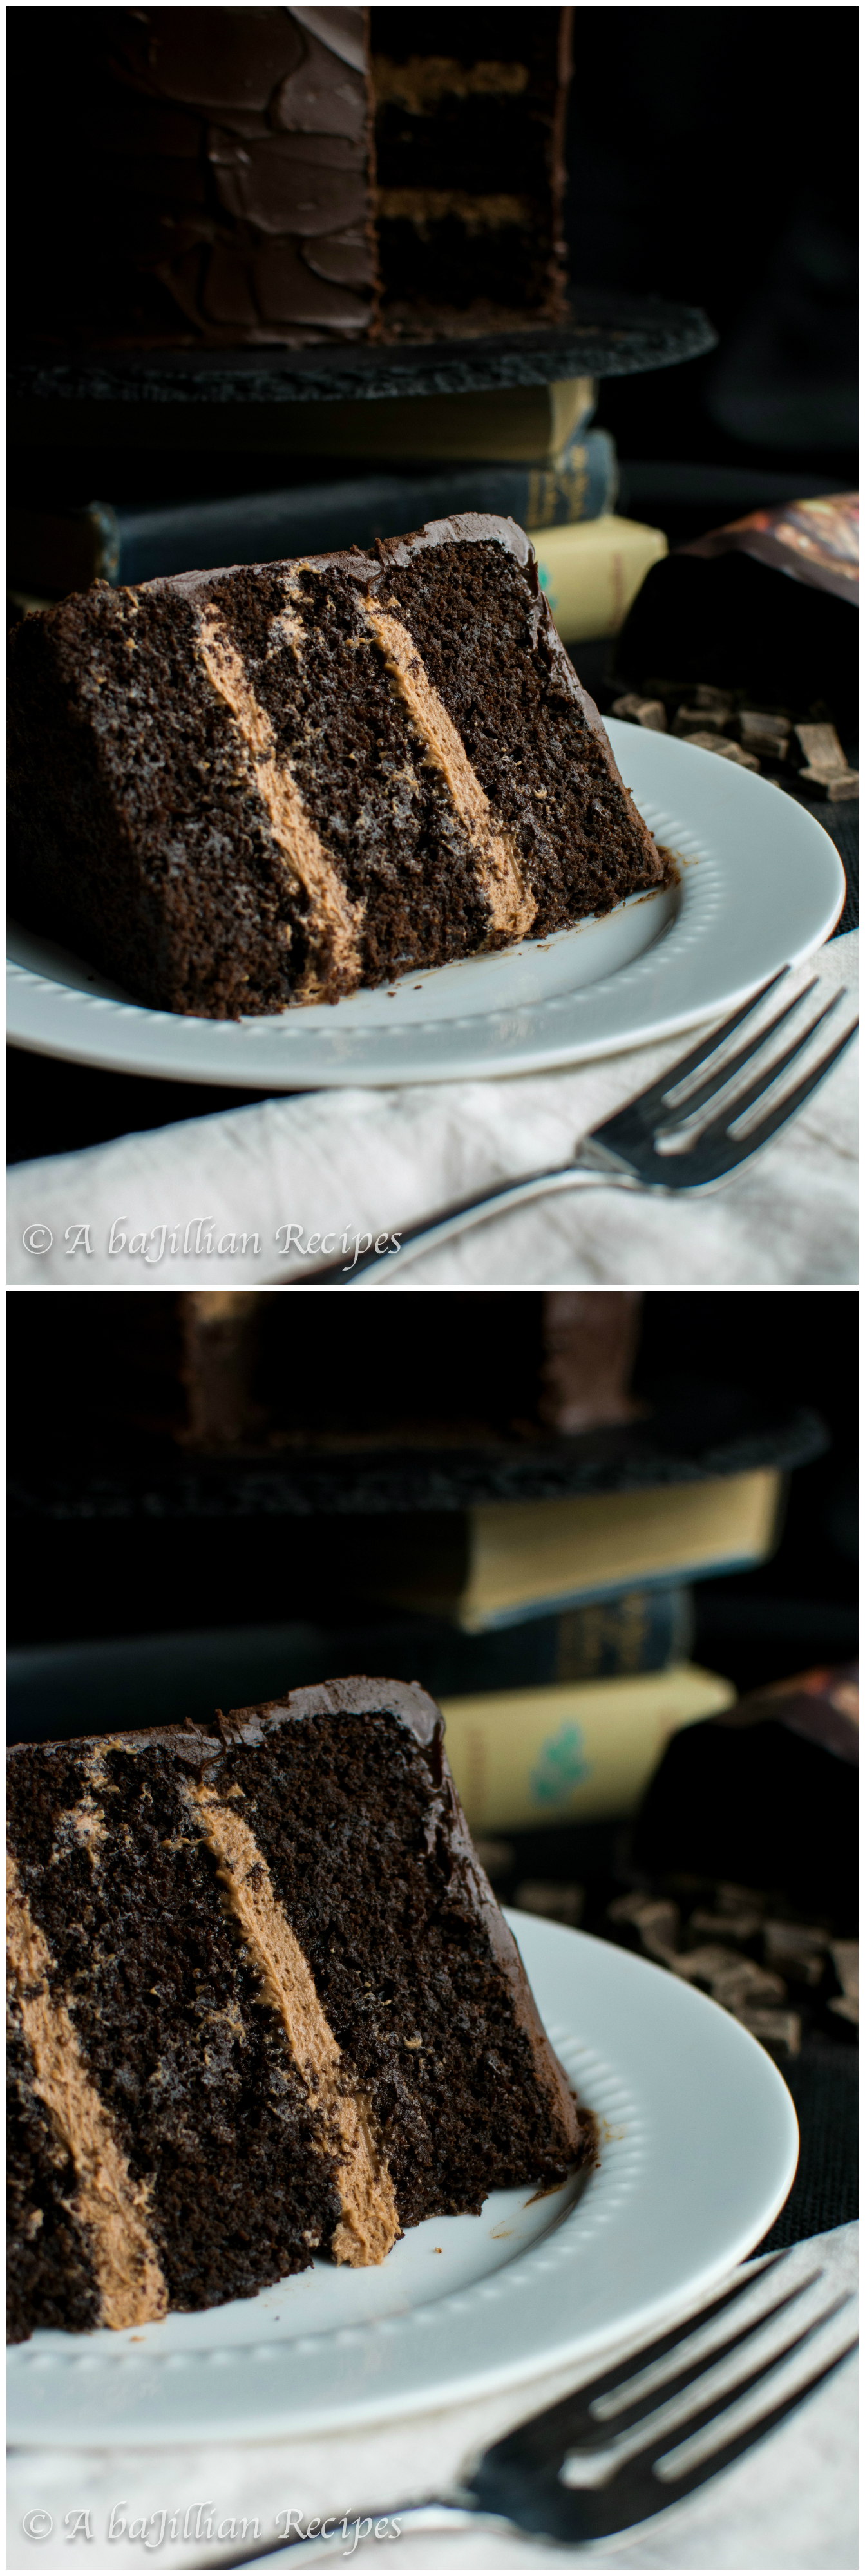 Recipes for any kind of cake